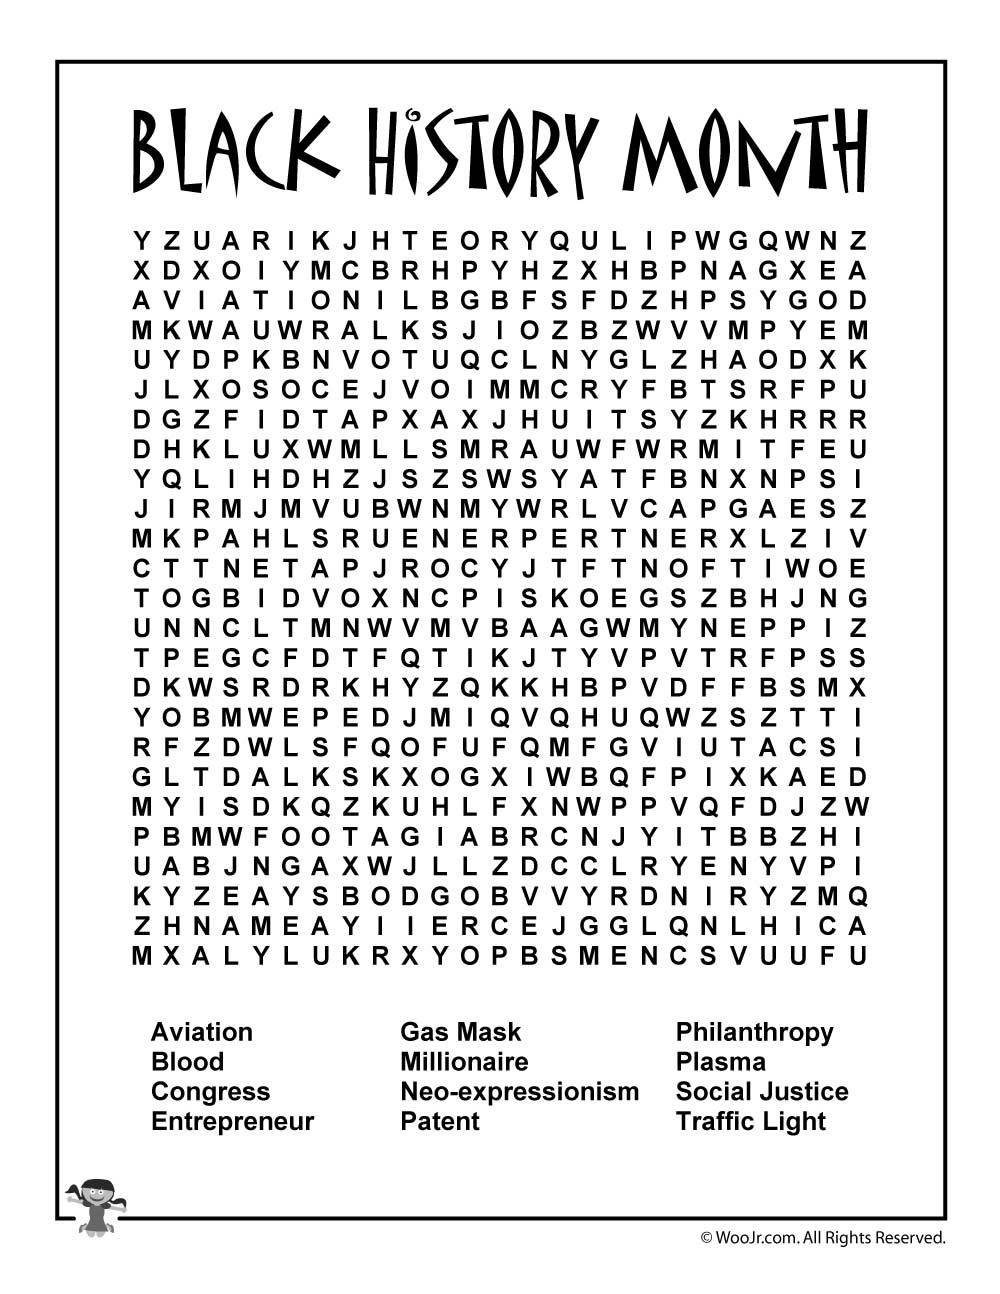 Free Black History Month Worksheet + A Reading List | Internship | Black History Month Free Printable Worksheets